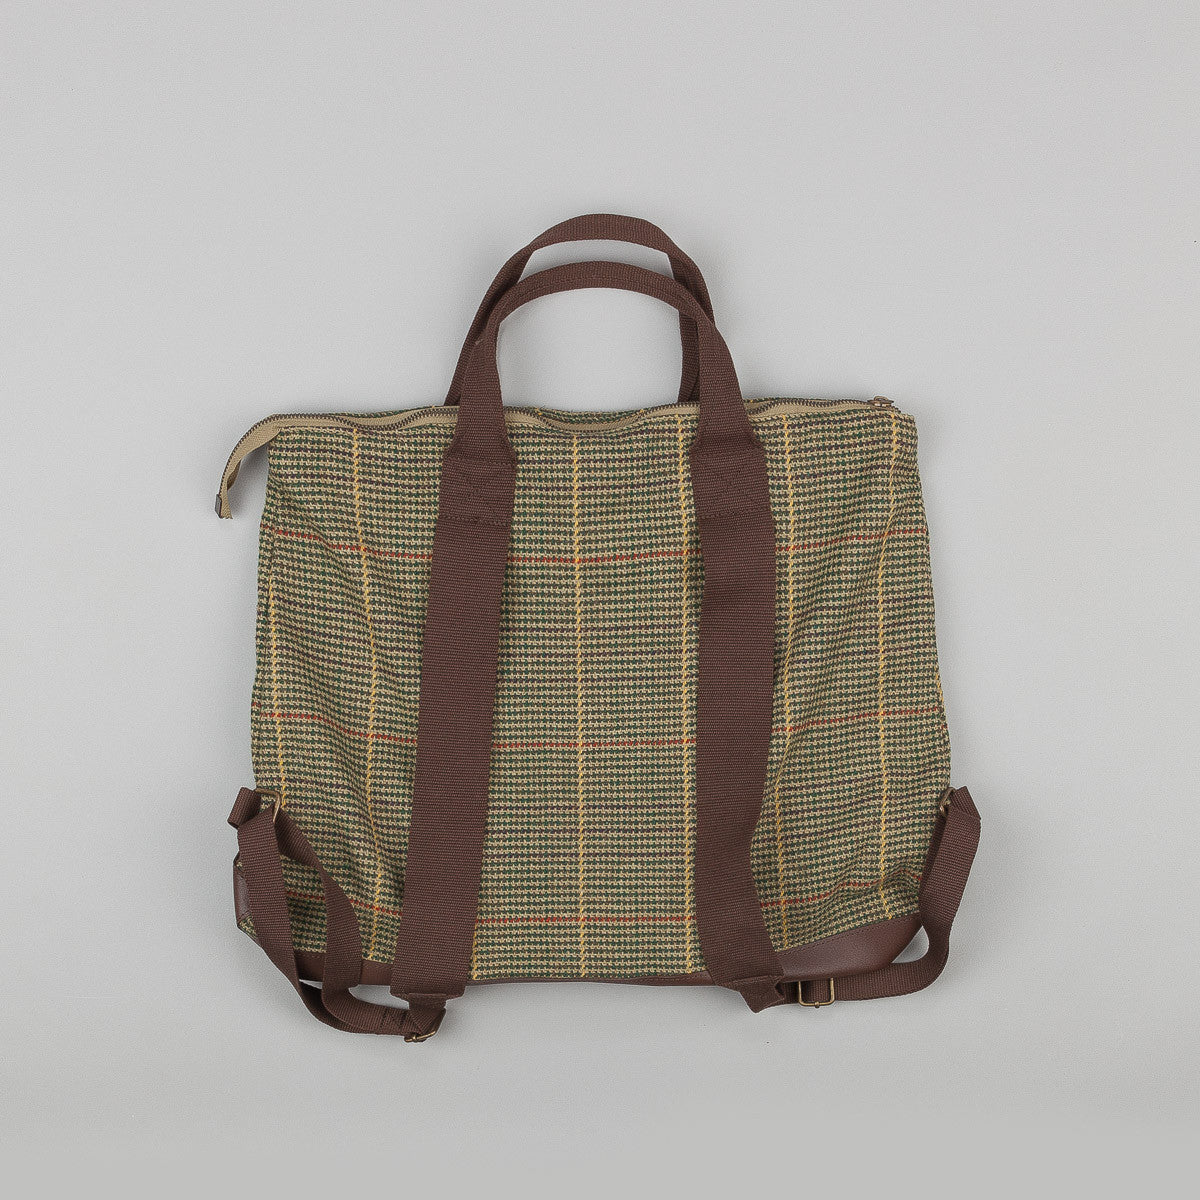 Penfield Underhill Bag - Tweed